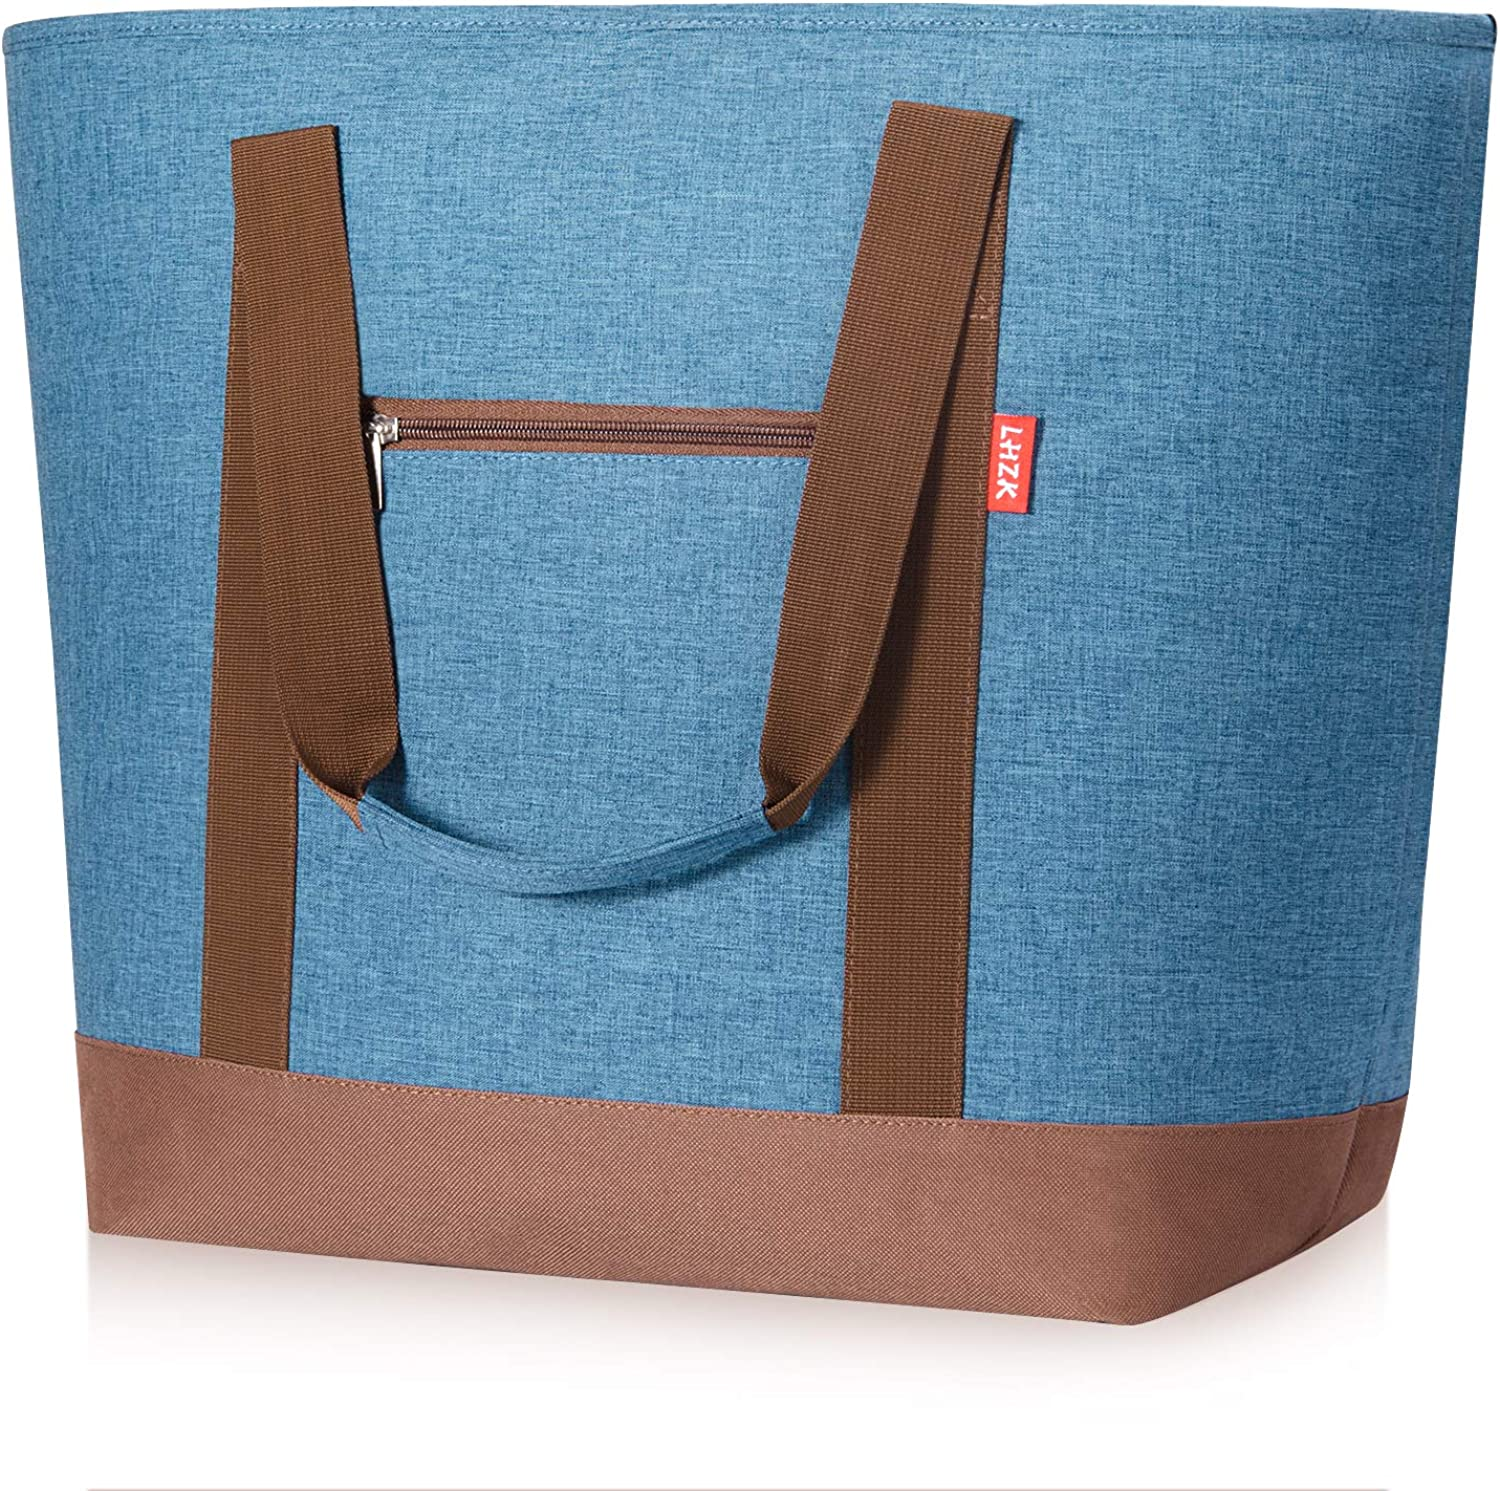 LHZK Jumbo Insulated Cooler Tote Bag with Zipper, Insulated Reusable Grocery Bags for Food Transport Hot or Cold, Premium Quality Thermal Tote Bag, Travel Cooler or Beach Bags (X-Large-50L, Blue)